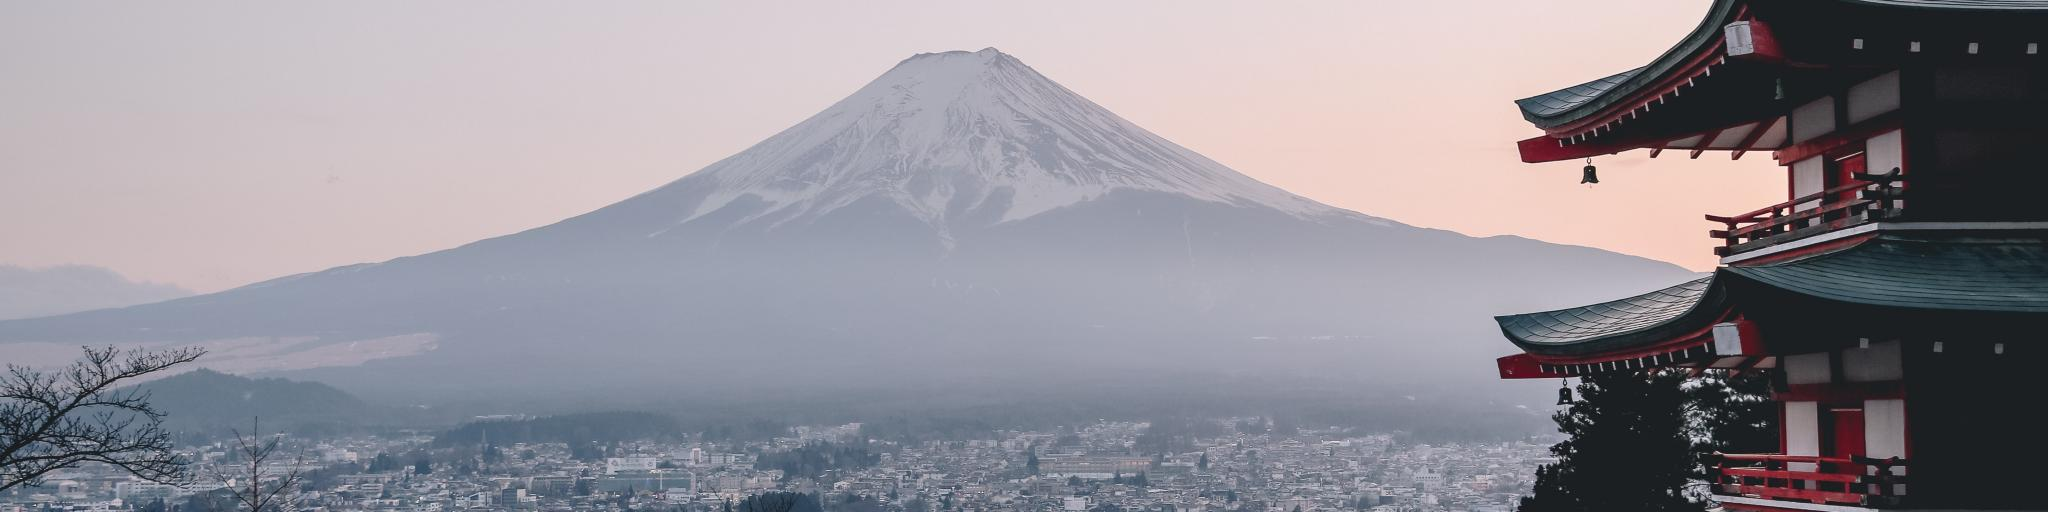 Mount Fuji in the haze towering over the city of Tokyo, Japan